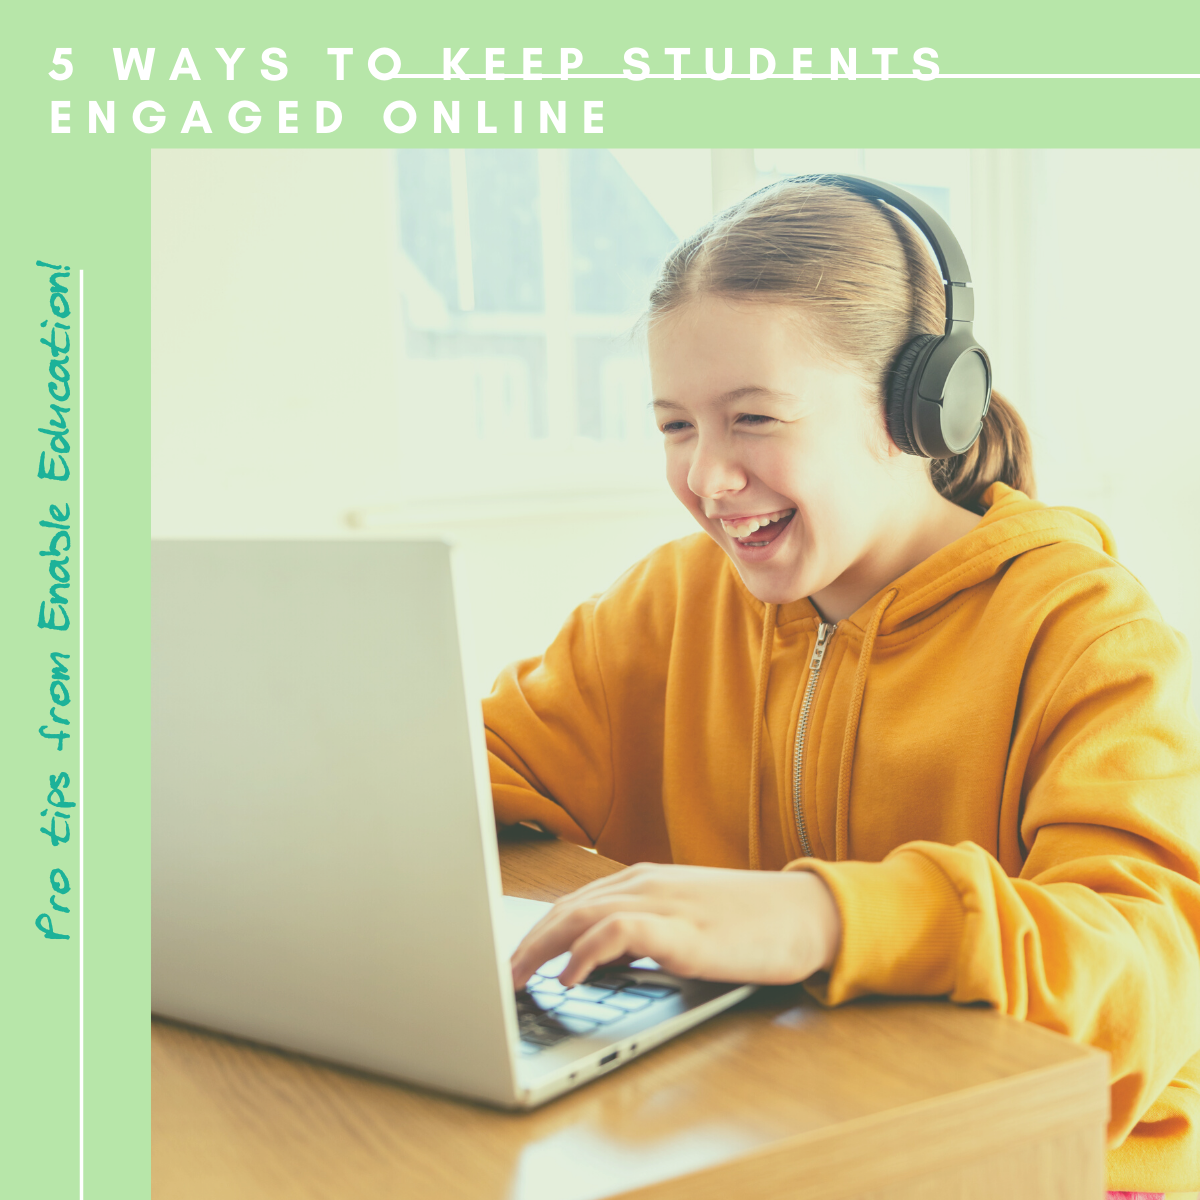 5 ways to keep students engaged online